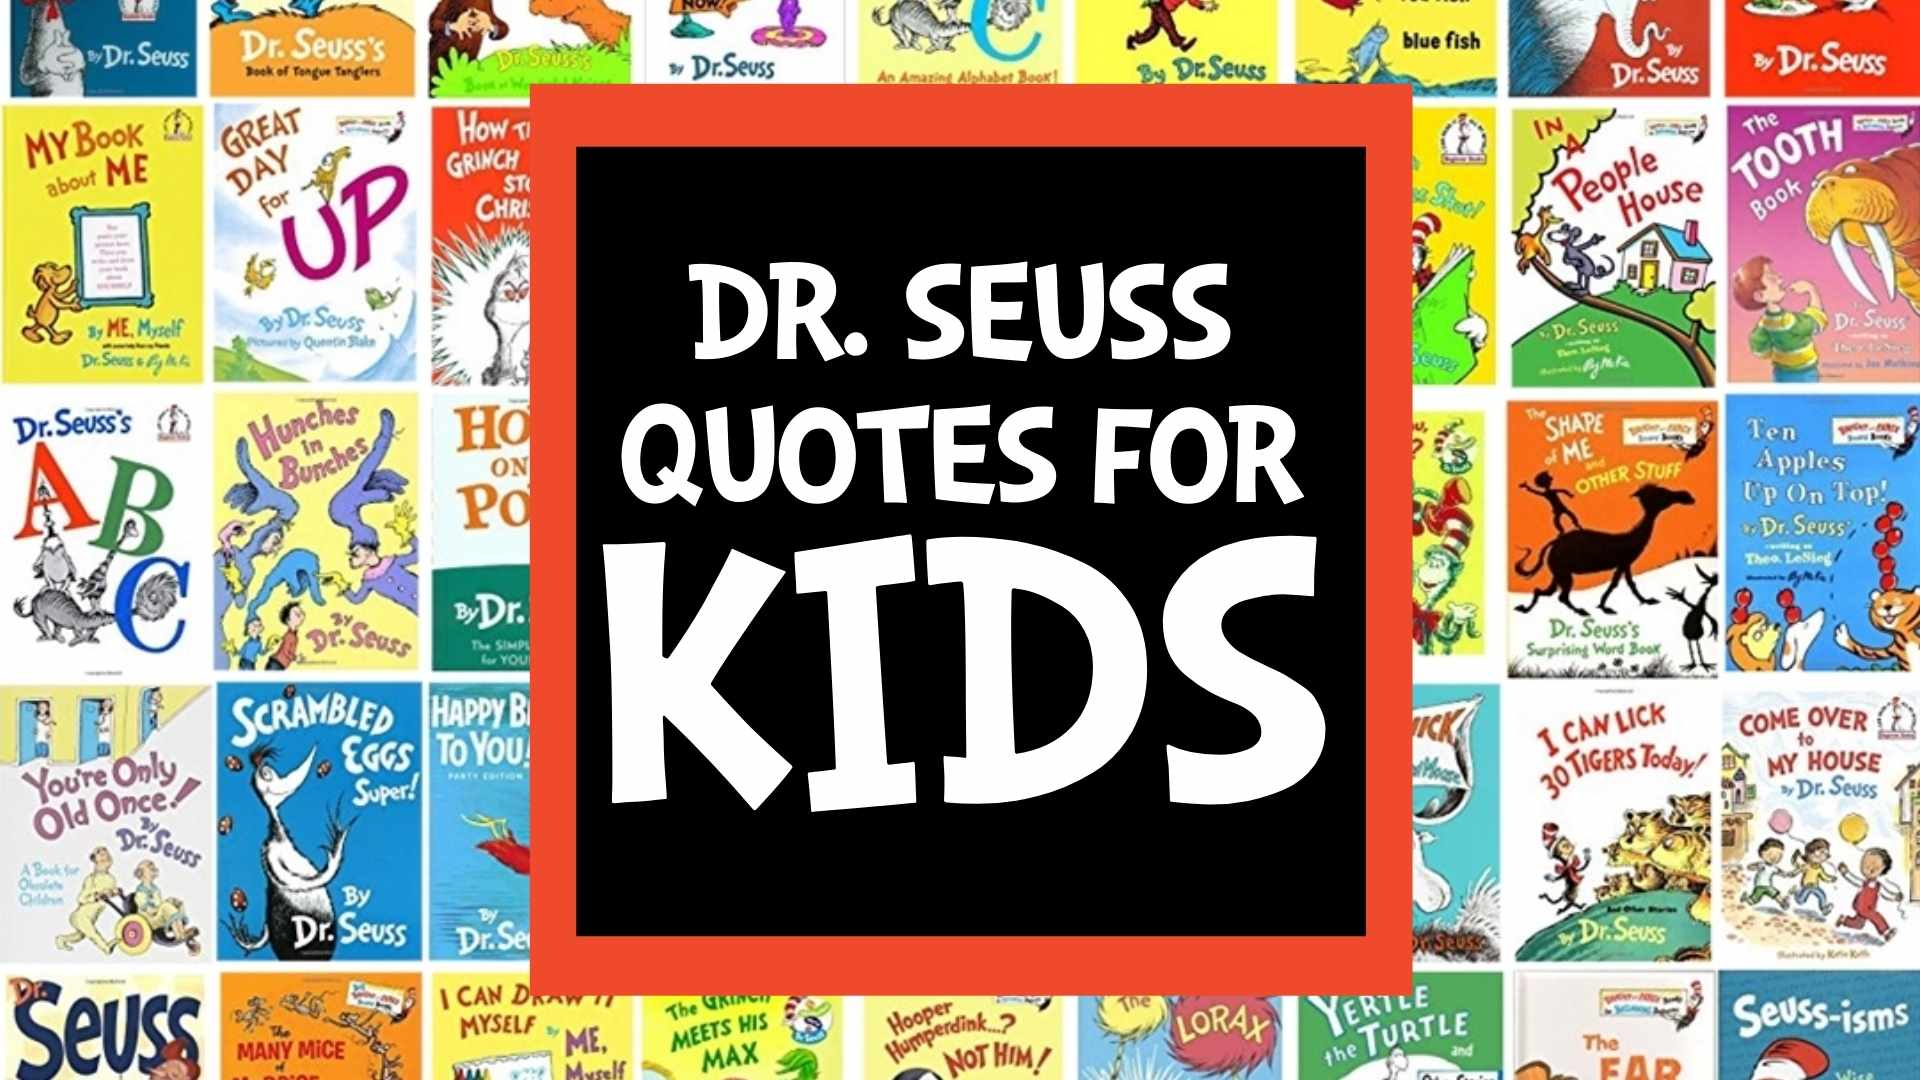 dr seuss quotes for kids from his childrens book collection